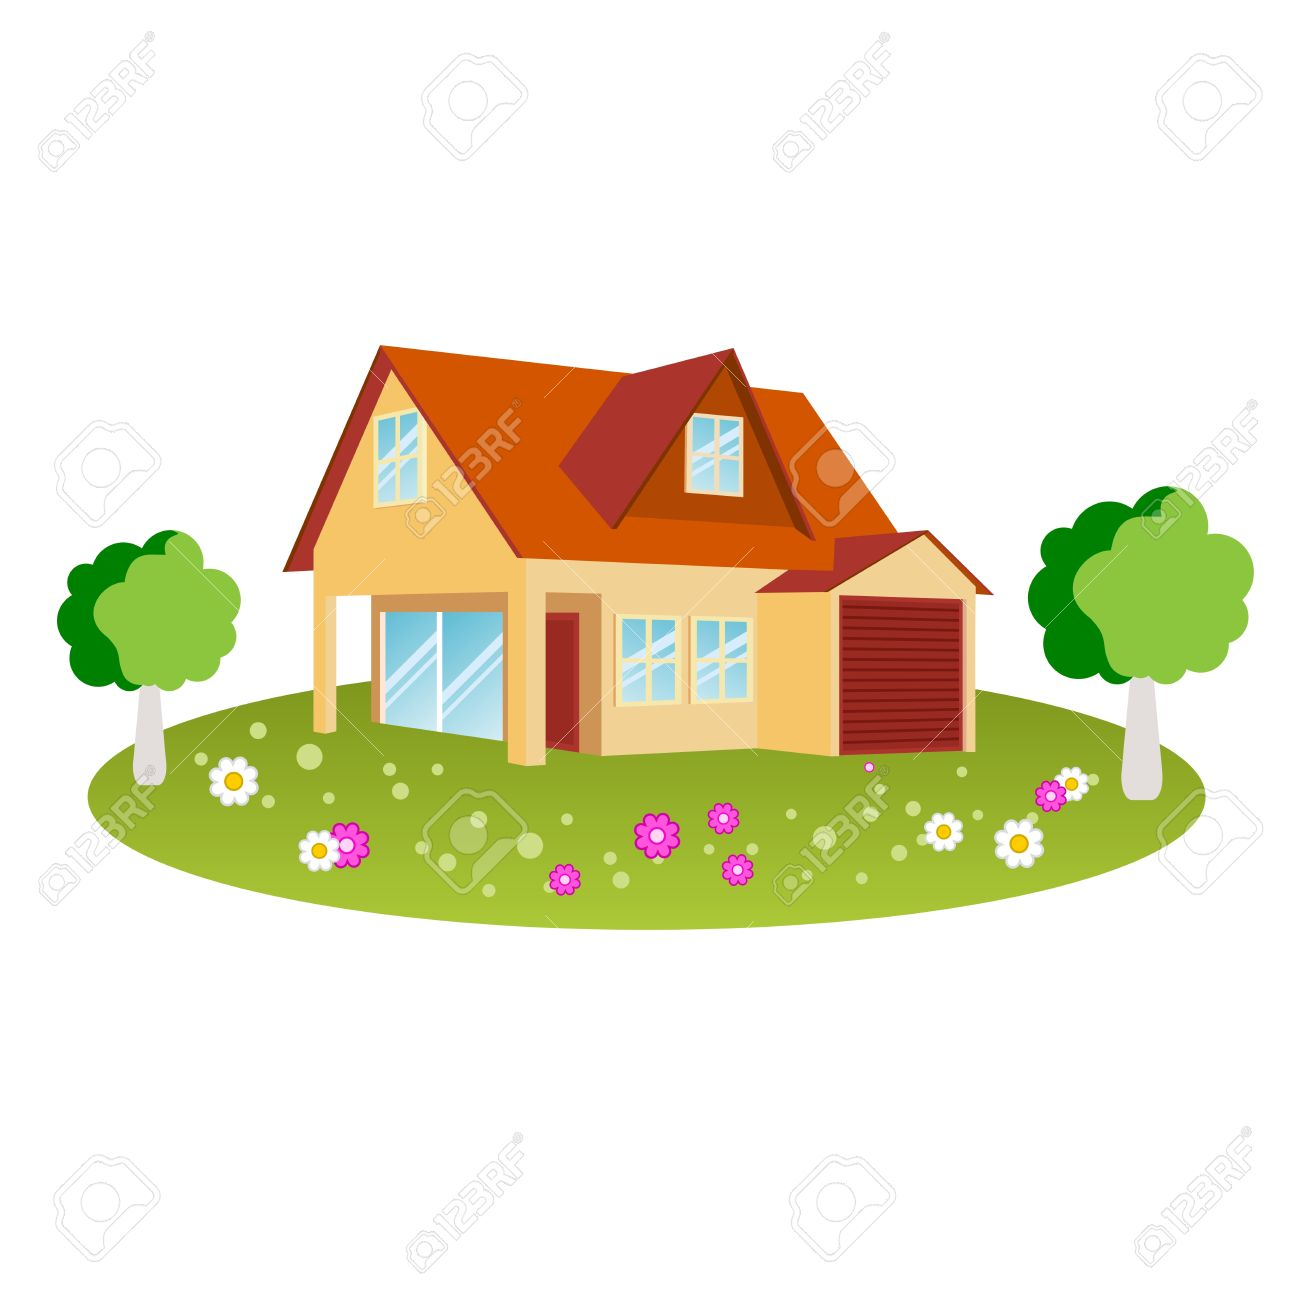 House Design With Flowers And Trees Royalty Free Cliparts, Vectors ...